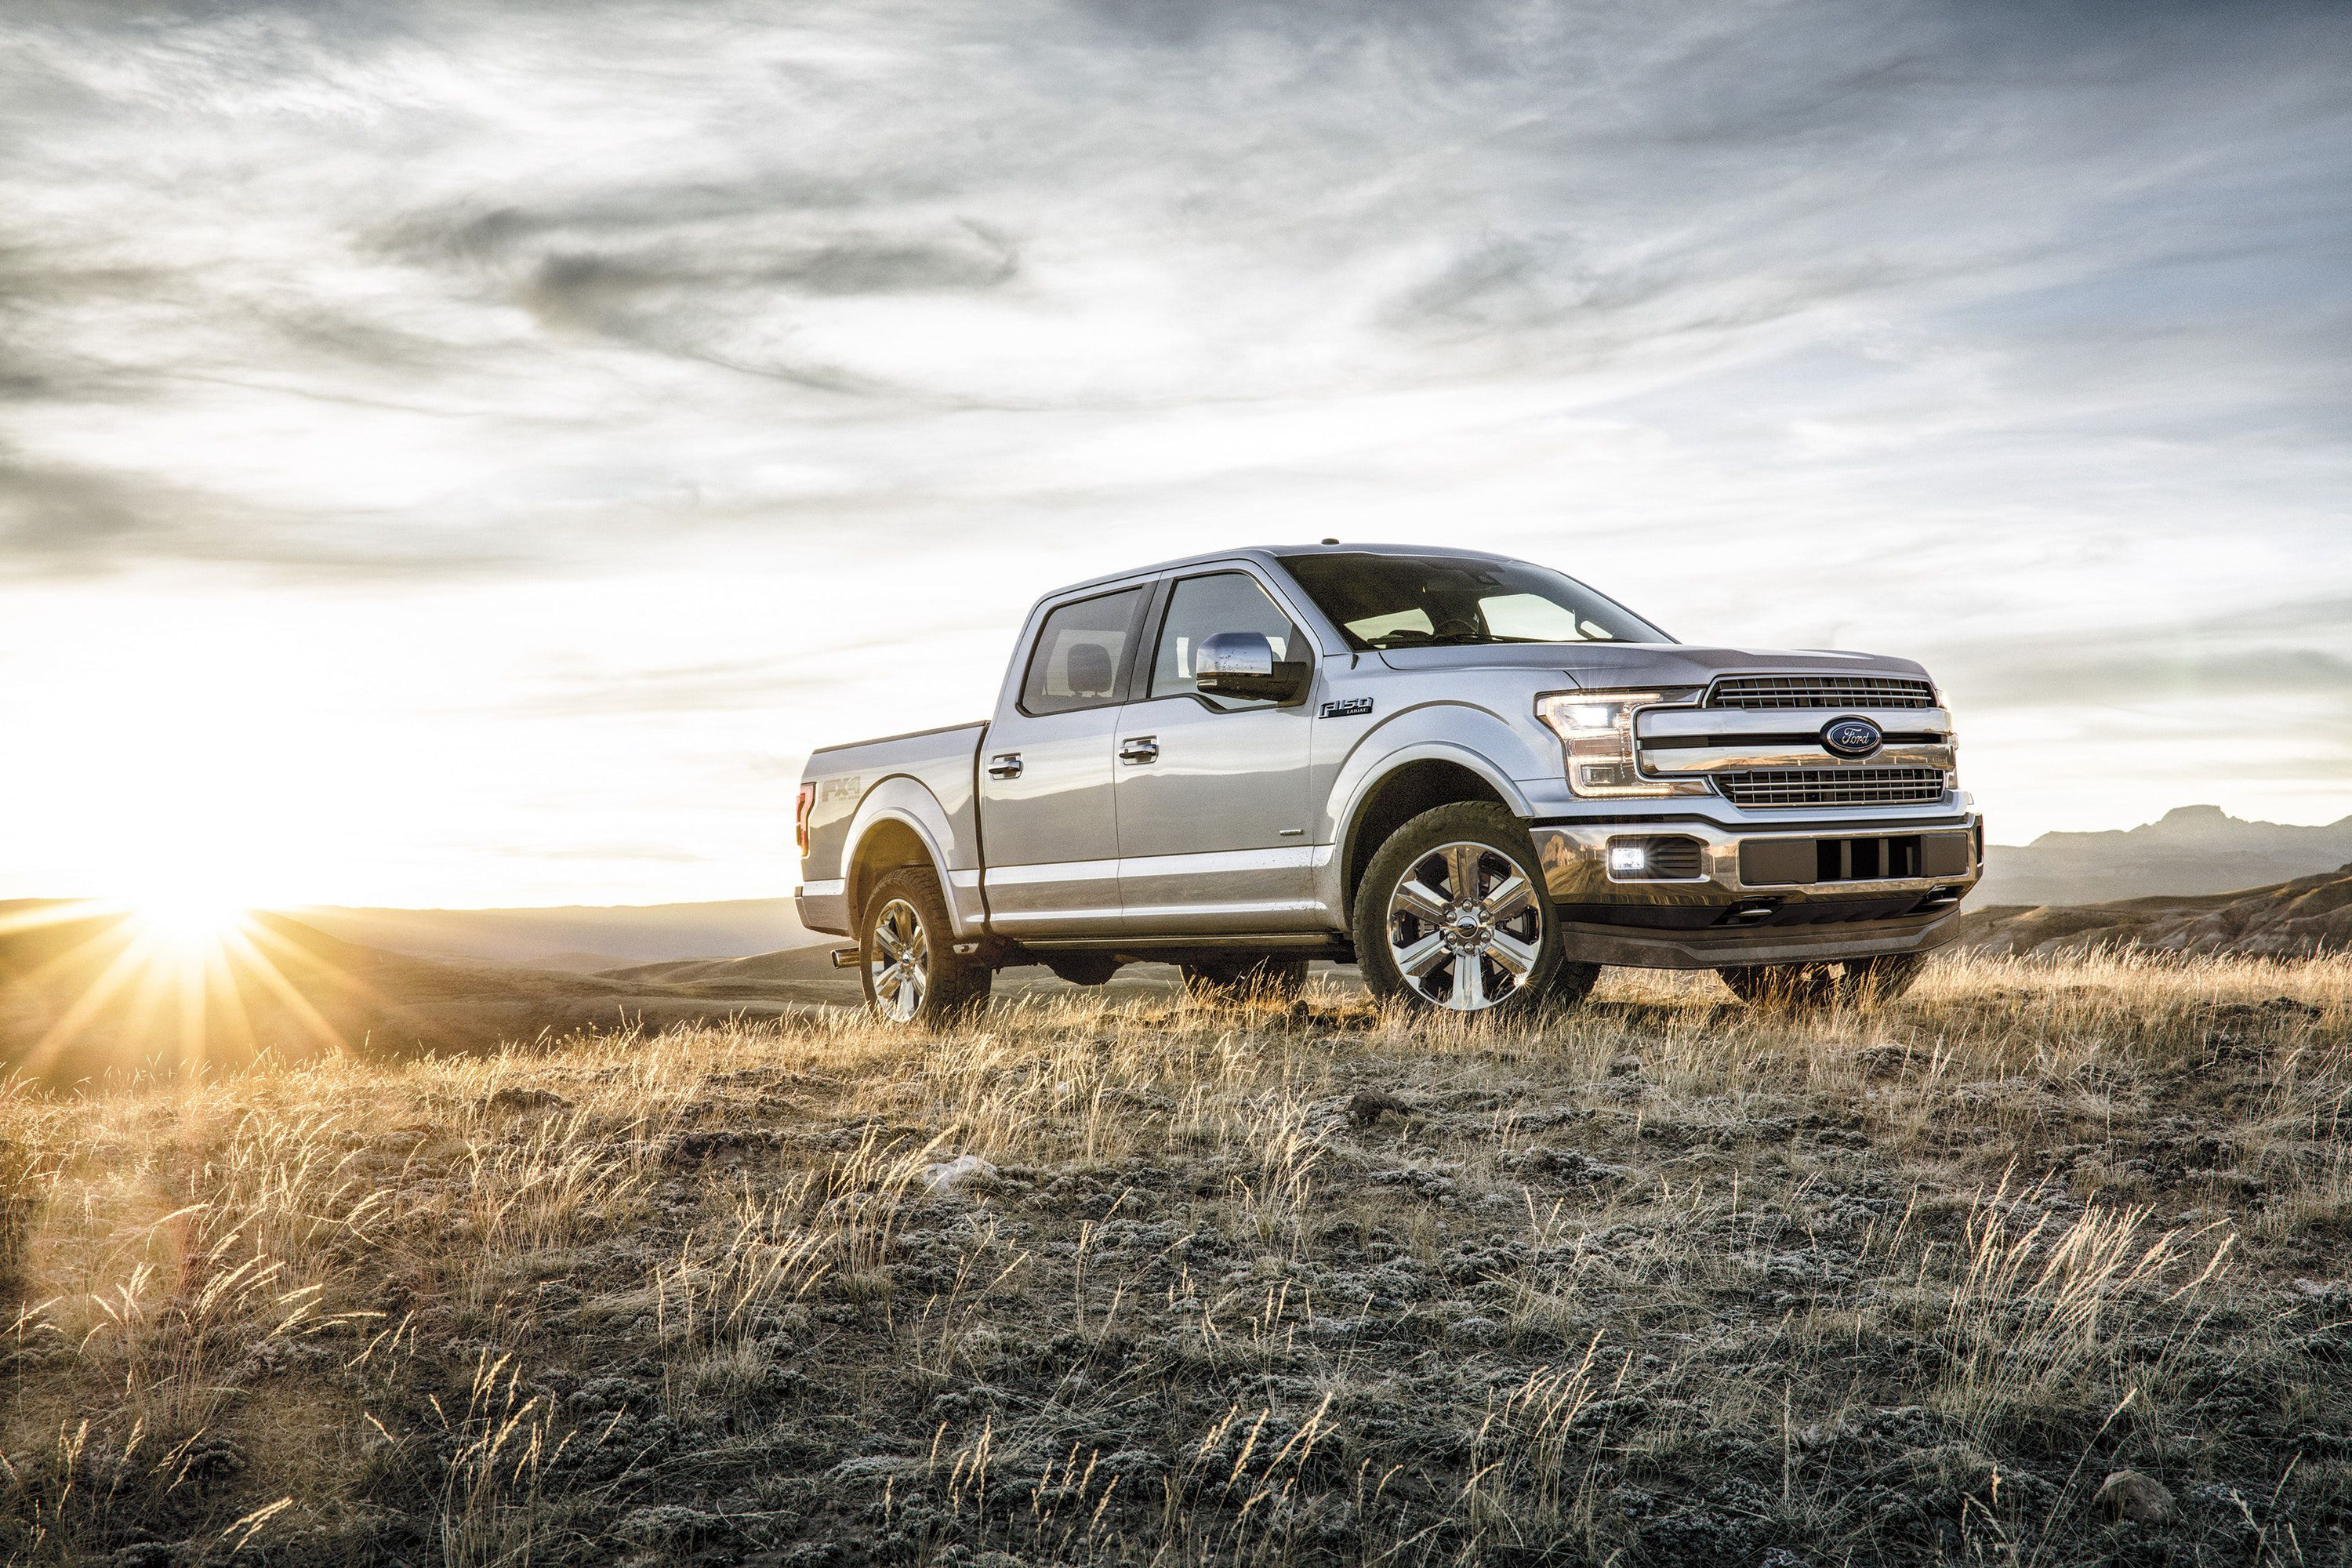 Ford F-Series is best selling car globally so far in 2018